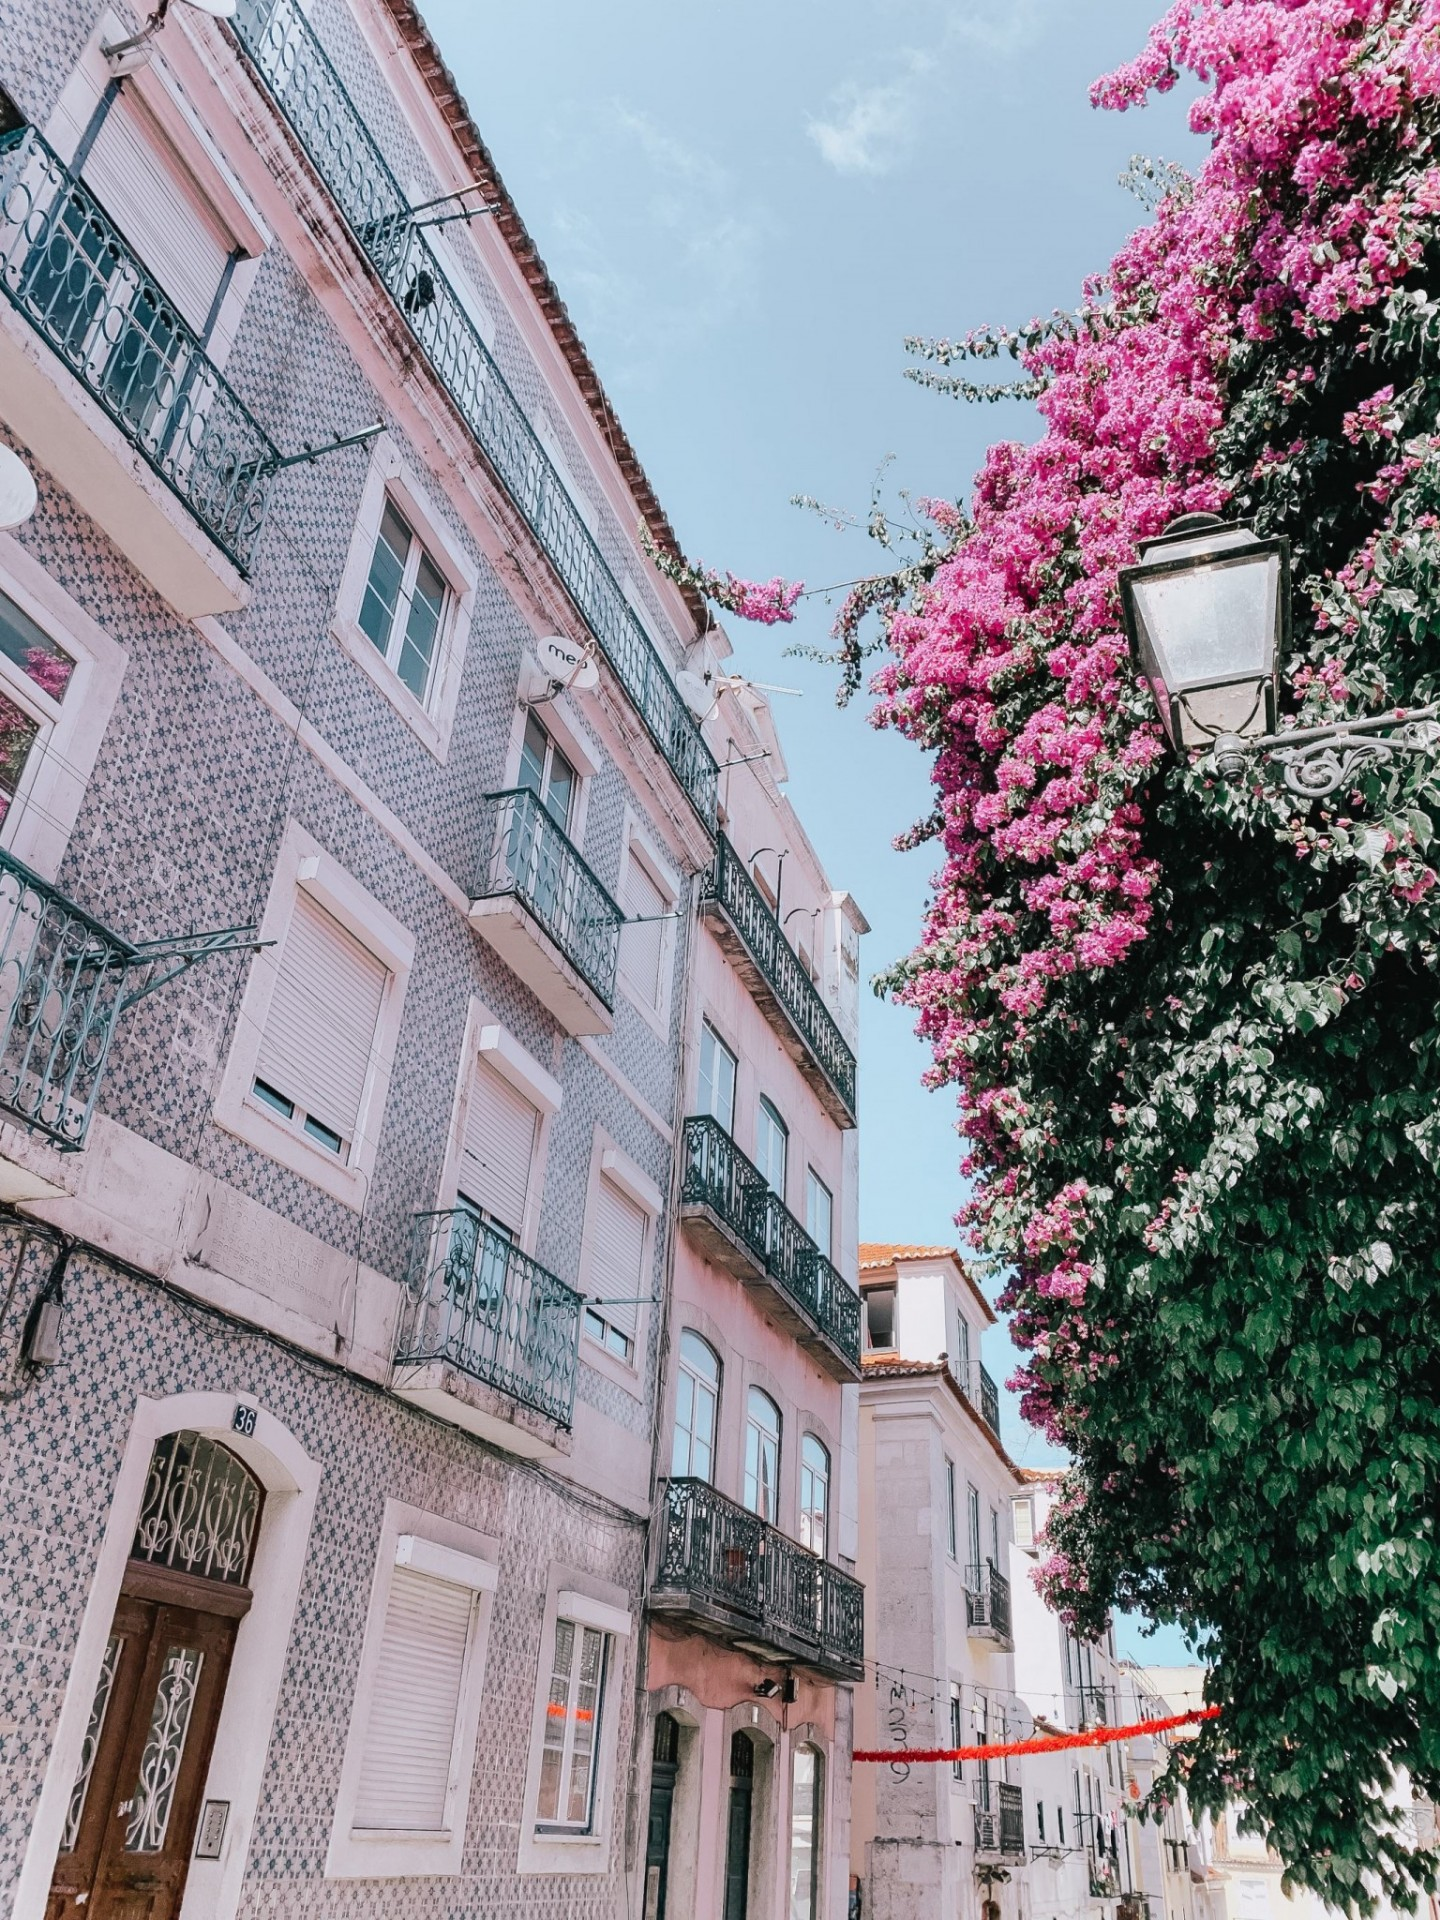 Lifestyle blogger Mollie Moore shares a Lisbon travel guide | Visiting Portugal: The Ultimate Lisbon Travel Guide & the Best Things to Do by popular London travel blogger, Mollie Moore: image of a tiled building in Lisbon, Portugal.